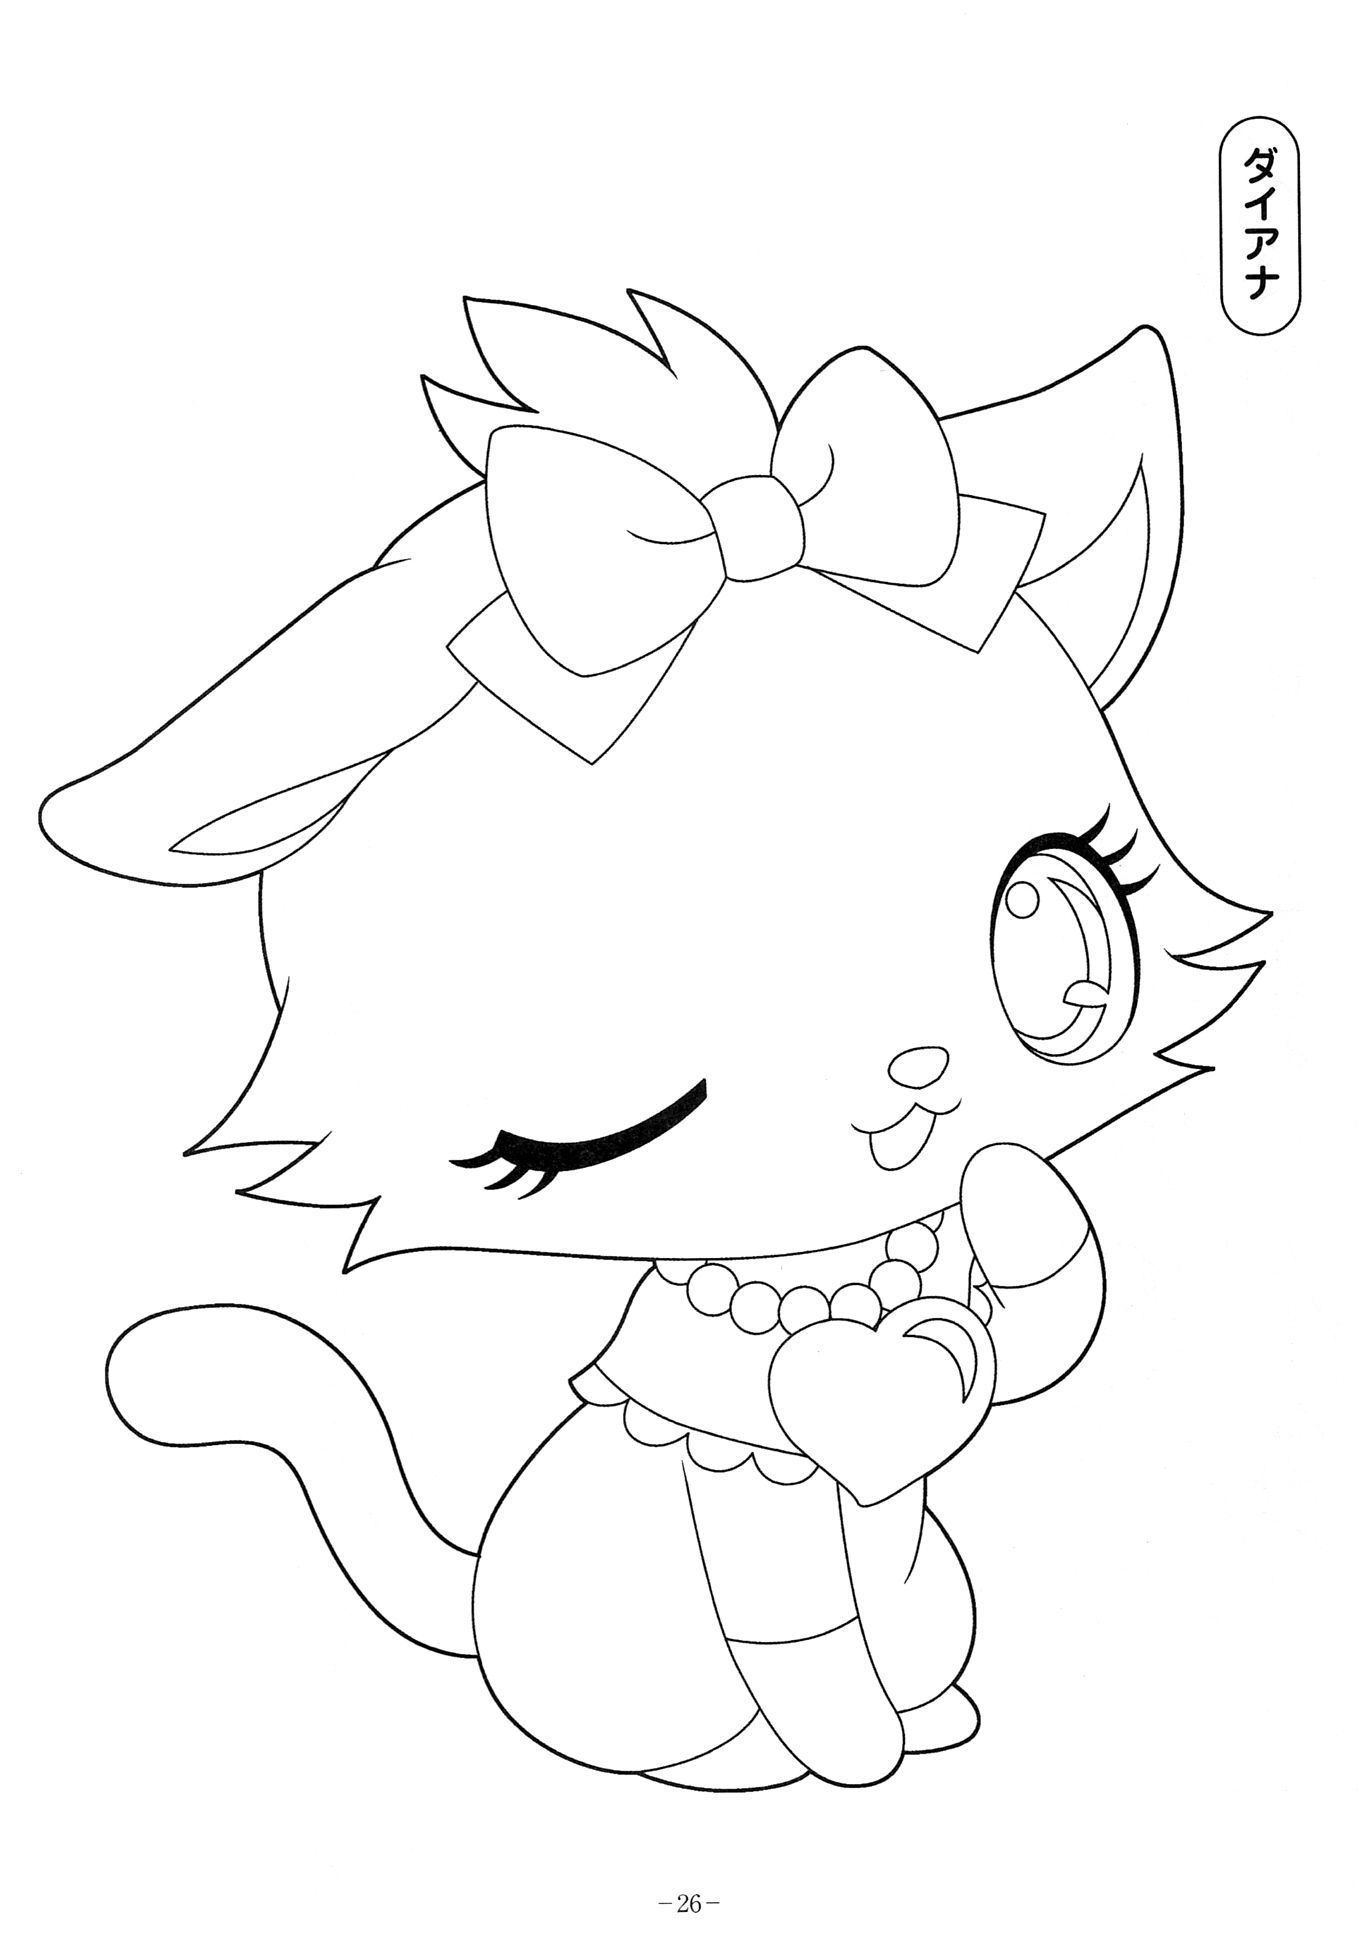 Jewelpet / Coloring Pages | Nurie - Kawaii Coloring | Pinterest ...